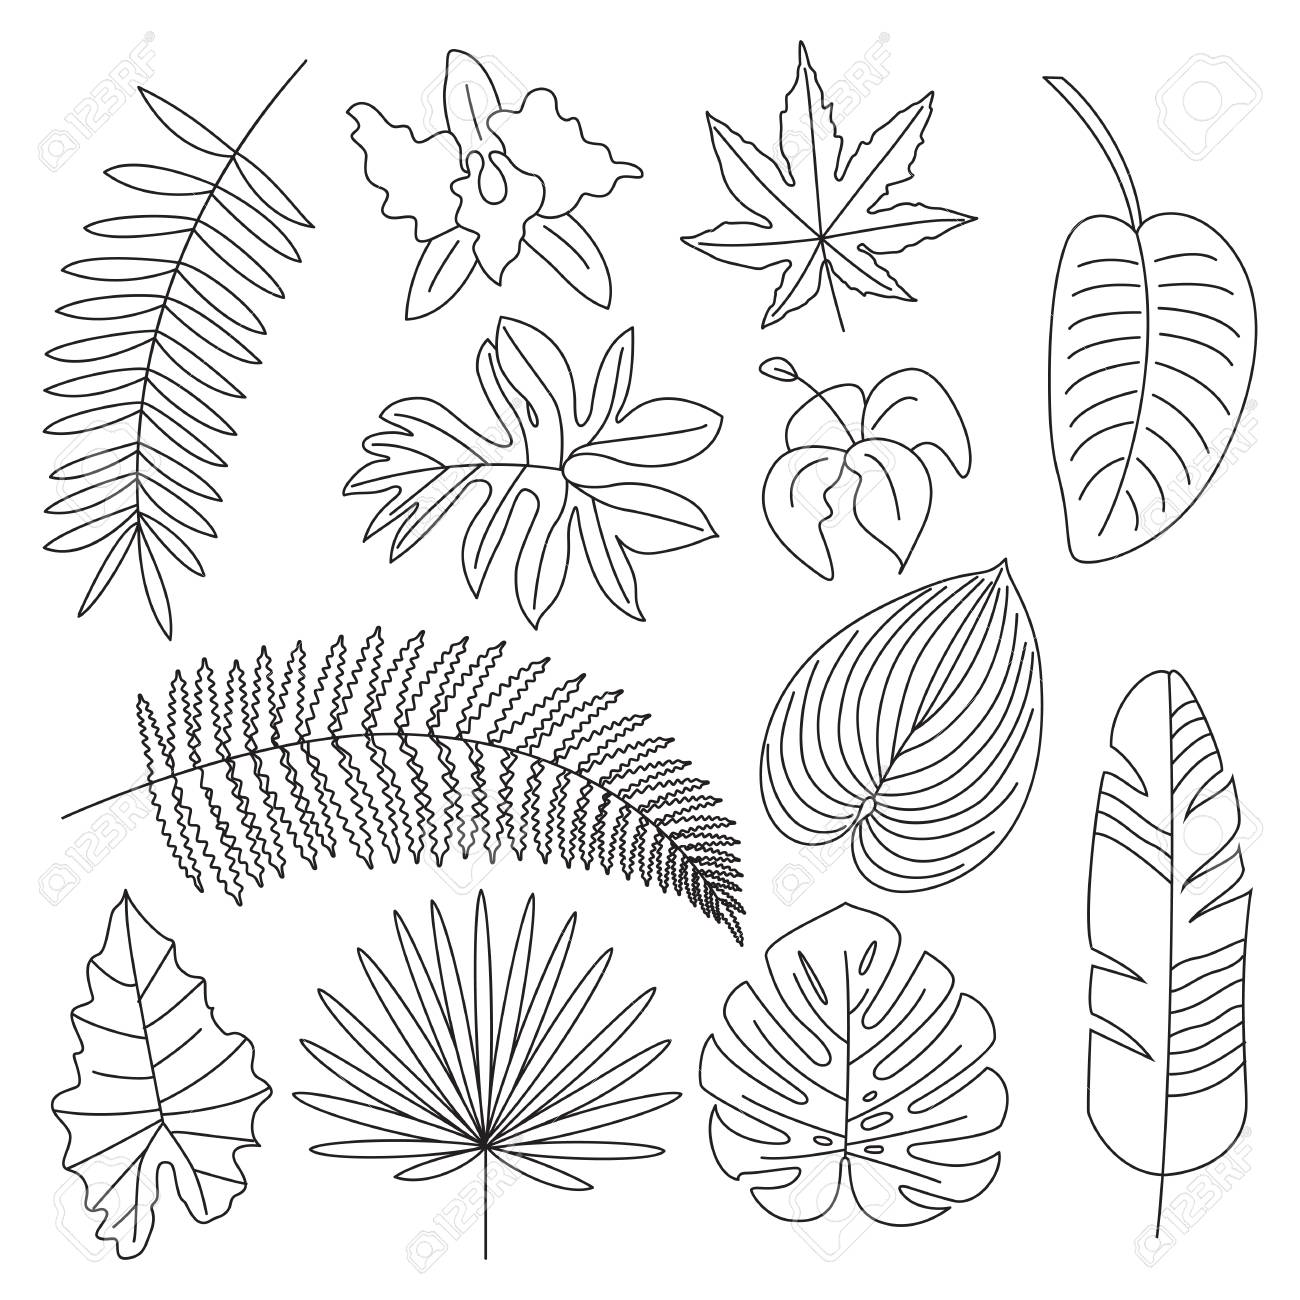 Tropical Leaves Floral Tropical Elements Outline Icons Royalty Free Cliparts Vectors And Stock Illustration Image 78351749 See more ideas about leaf outline, tropical, leaf template. tropical leaves floral tropical elements outline icons